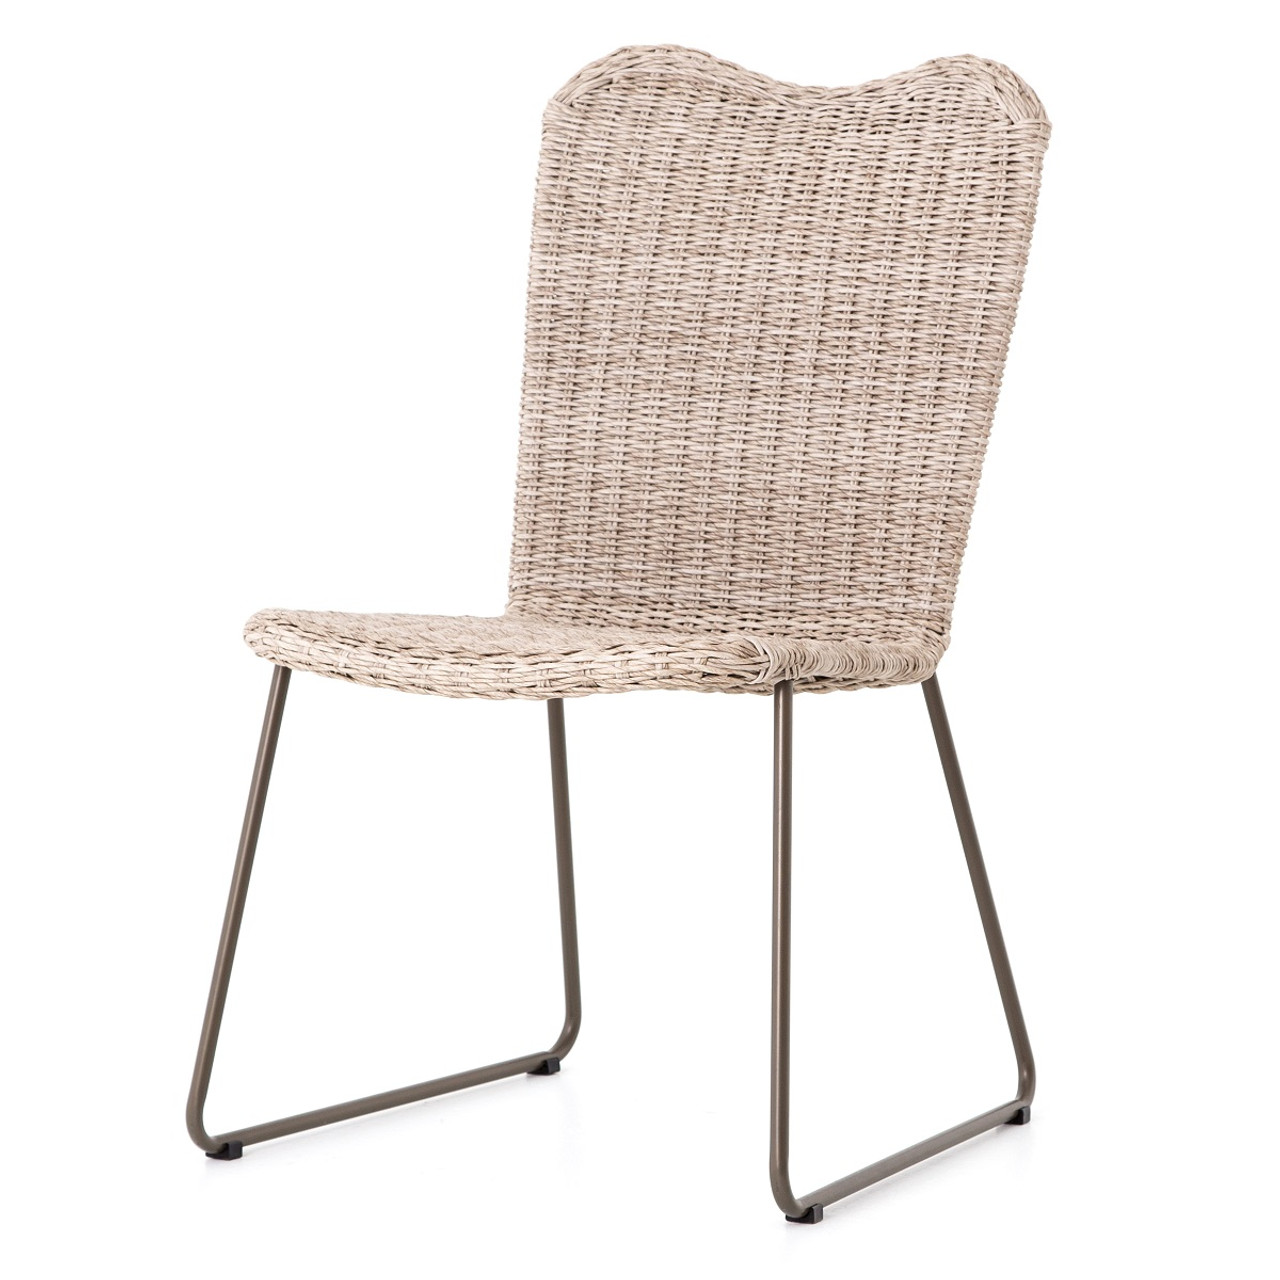 Canbiro Vintage White Woven Wicker Outdoor Dining Chair